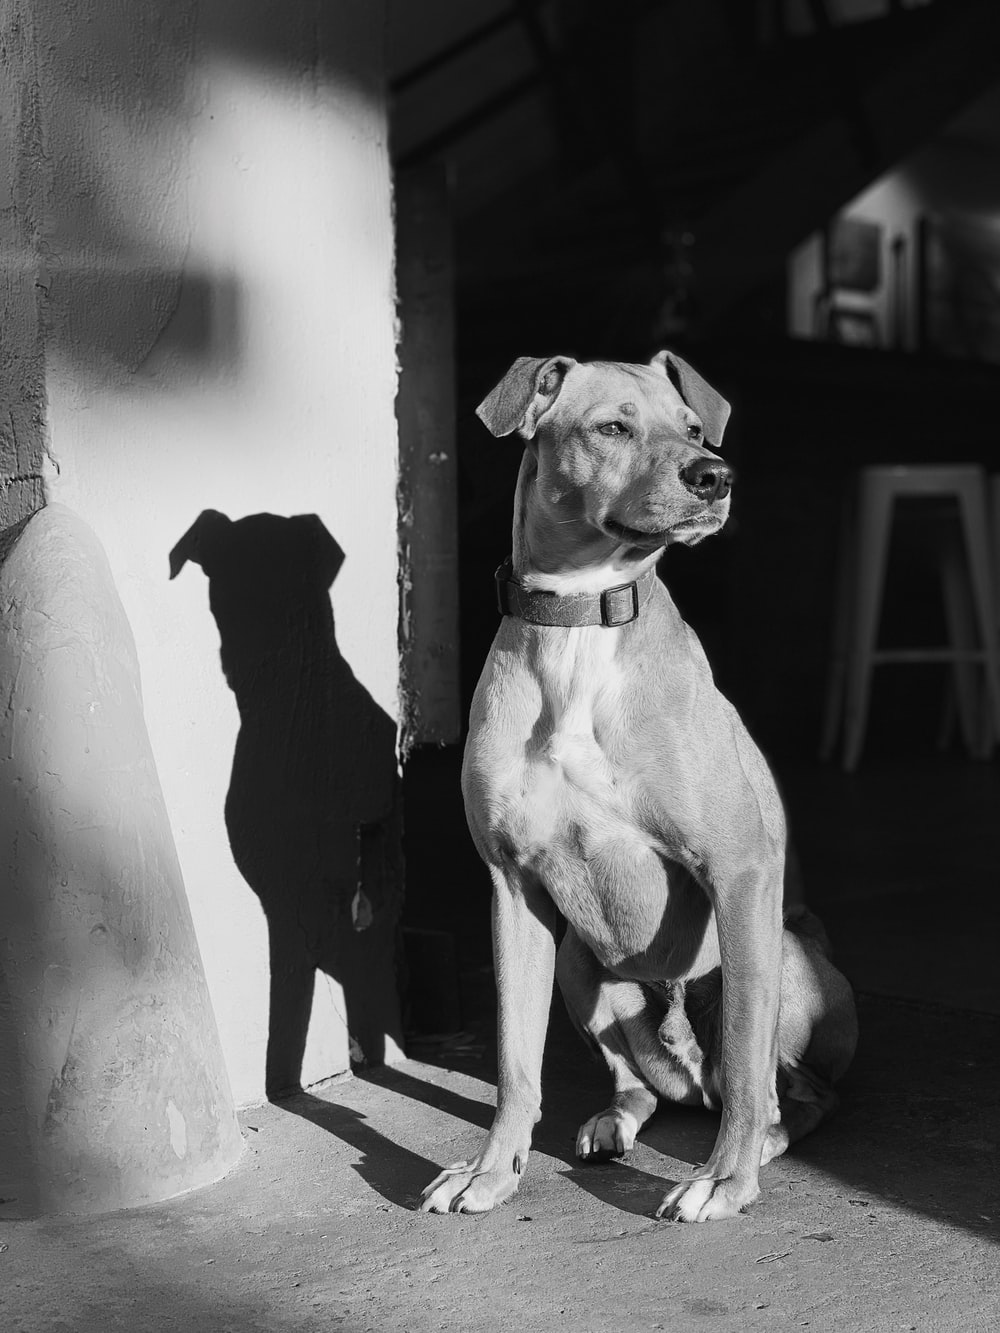 grayscale photography of dog